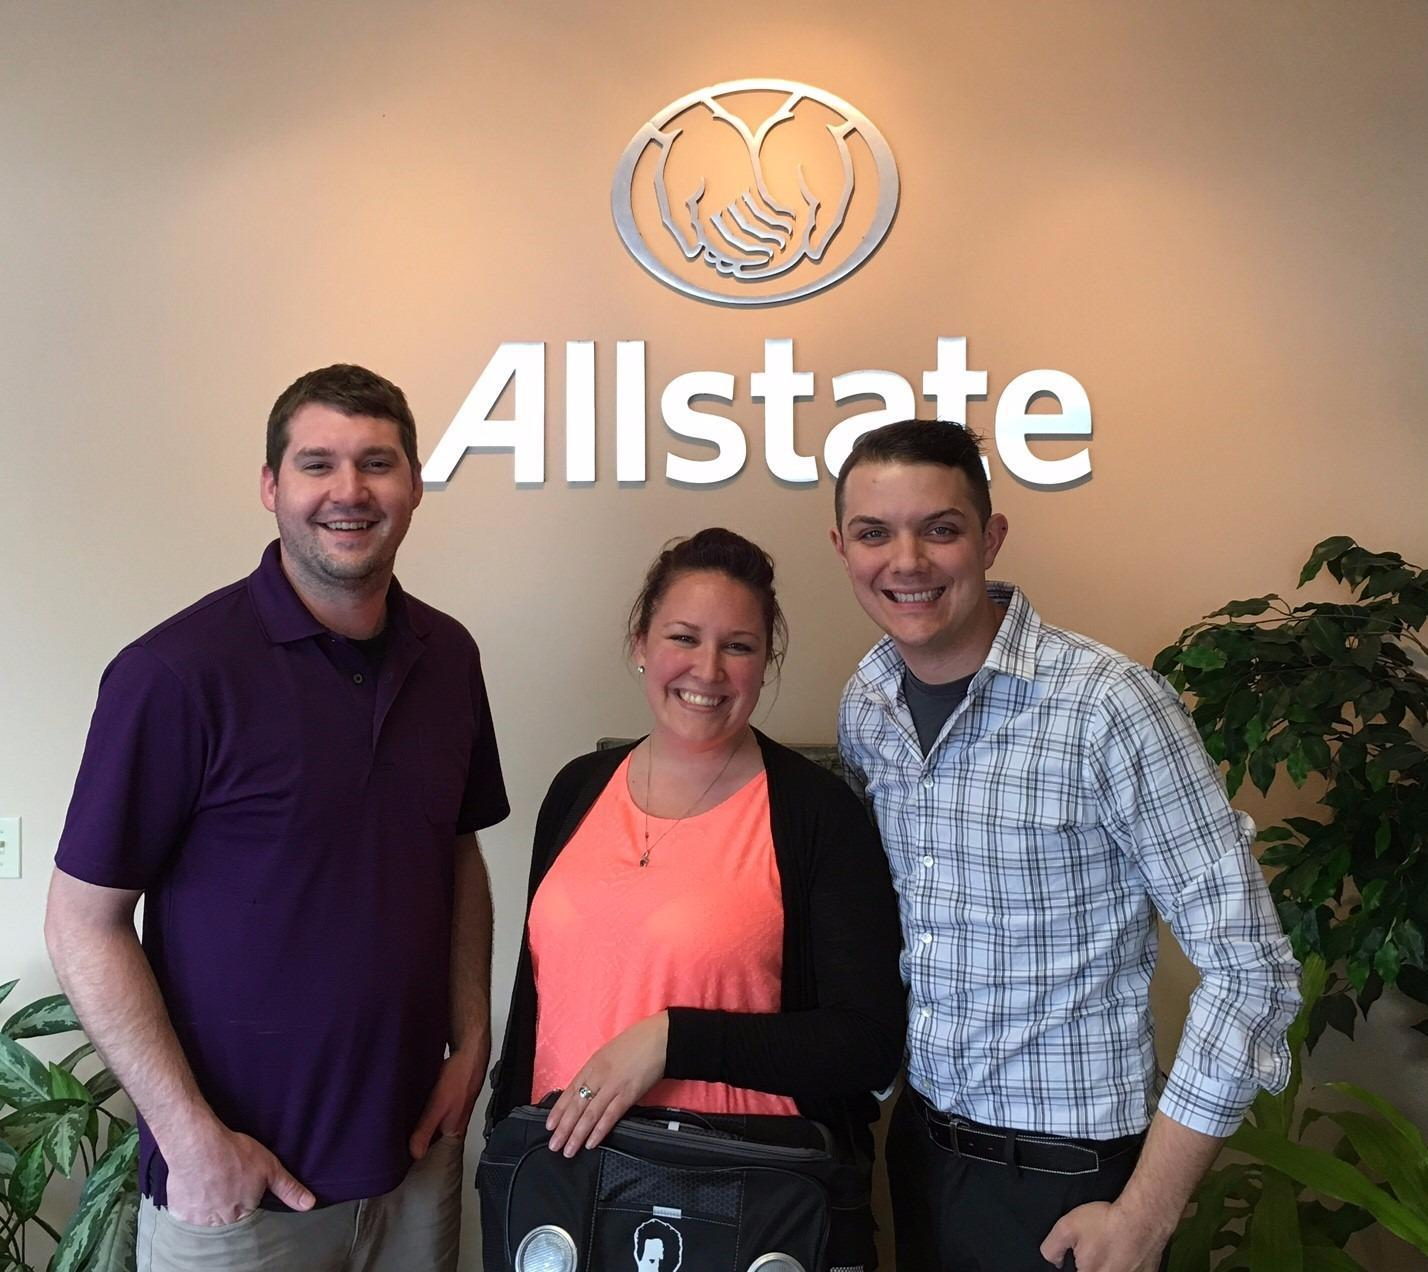 Allstate Get A Quote Phone Number: Allstate Insurance Agent: Susan Kempfer-Weeks Coupons